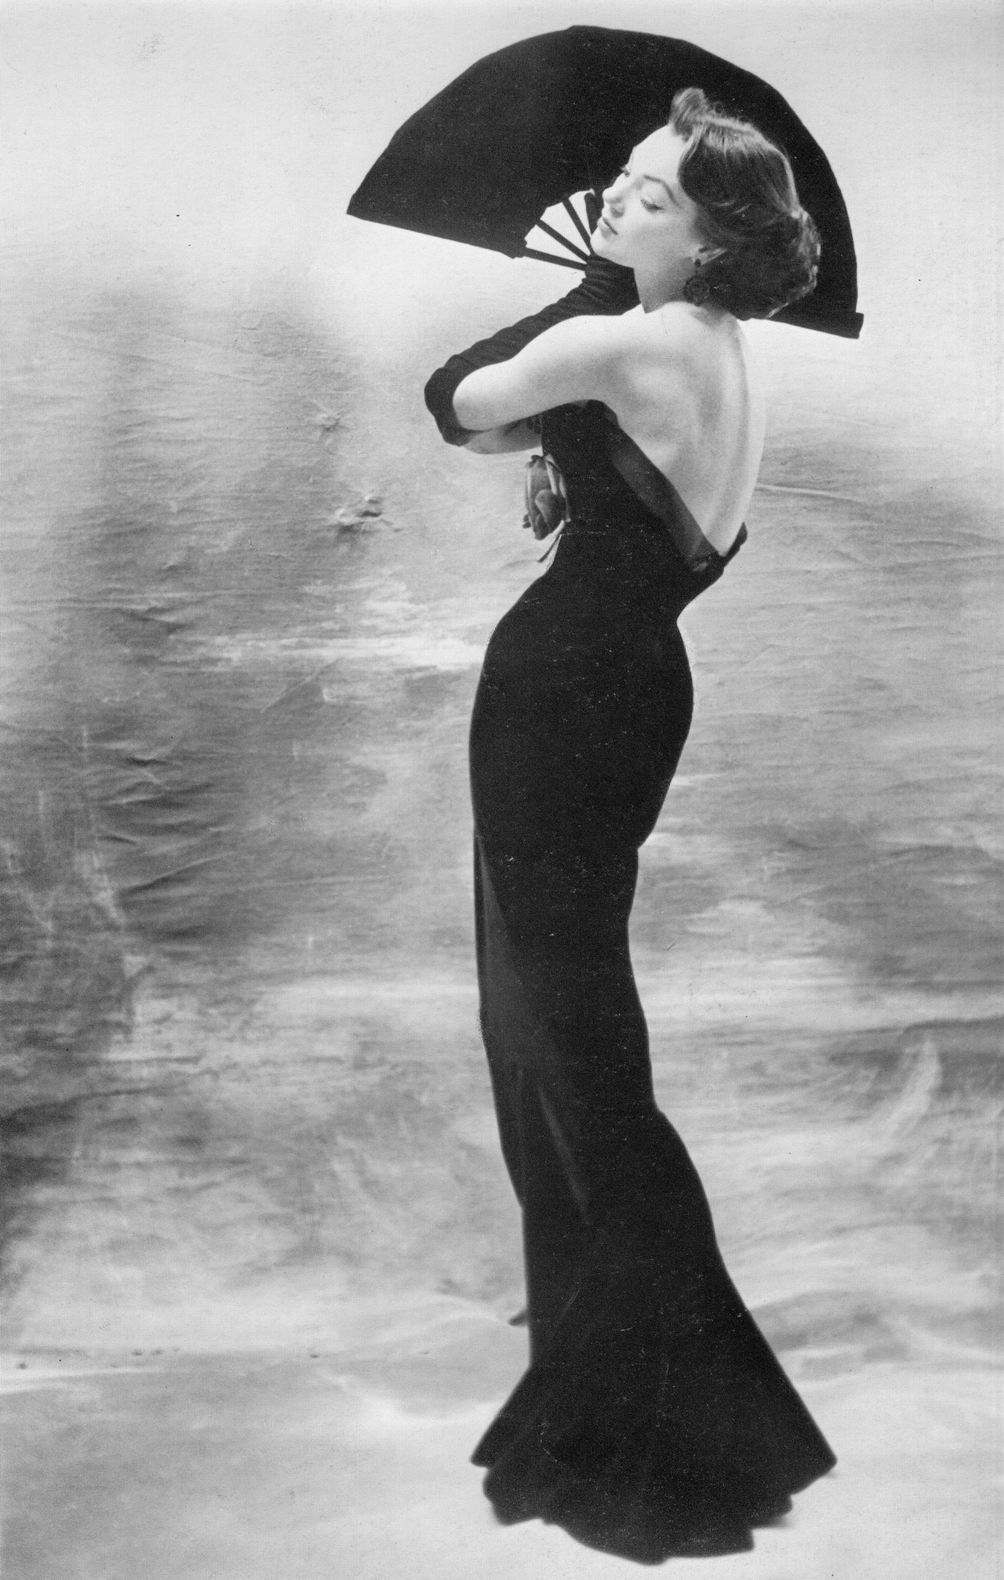 theniftyfifties: Ivy wearing a gown by Maggy Rouff, 1953. Photo by Henry Clarke.